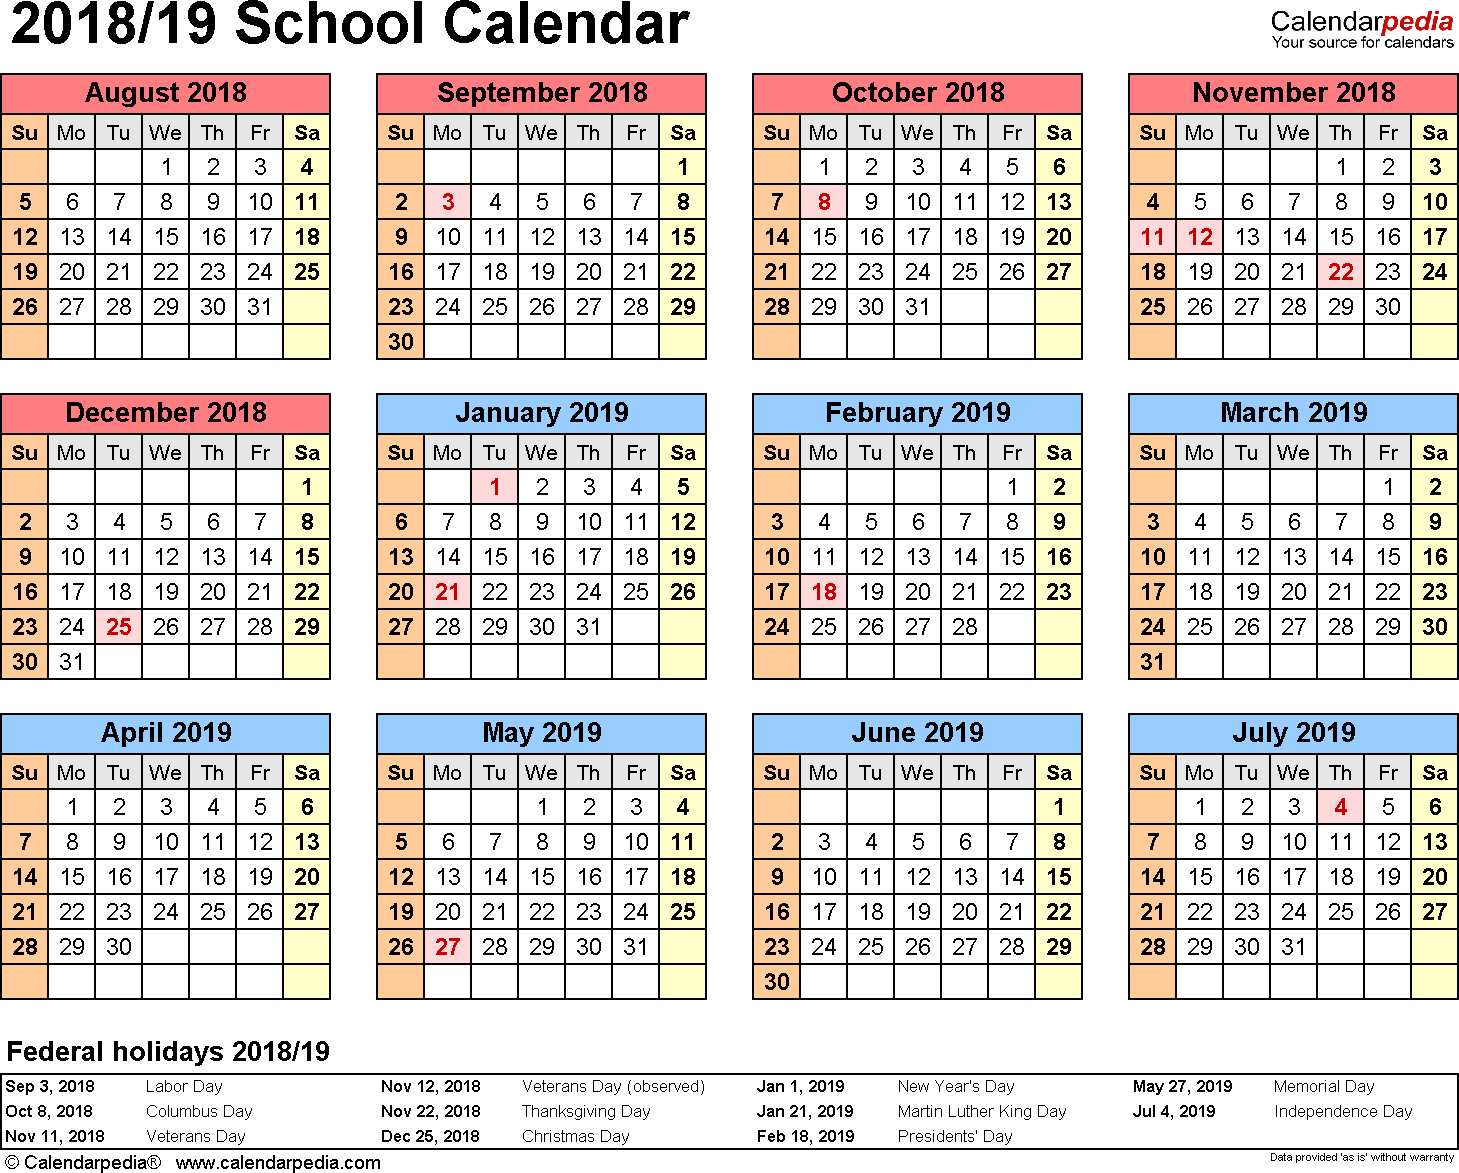 Template 4: School calendar 2018/19 for Excel, landscape orientation, year at a glance, 1 page